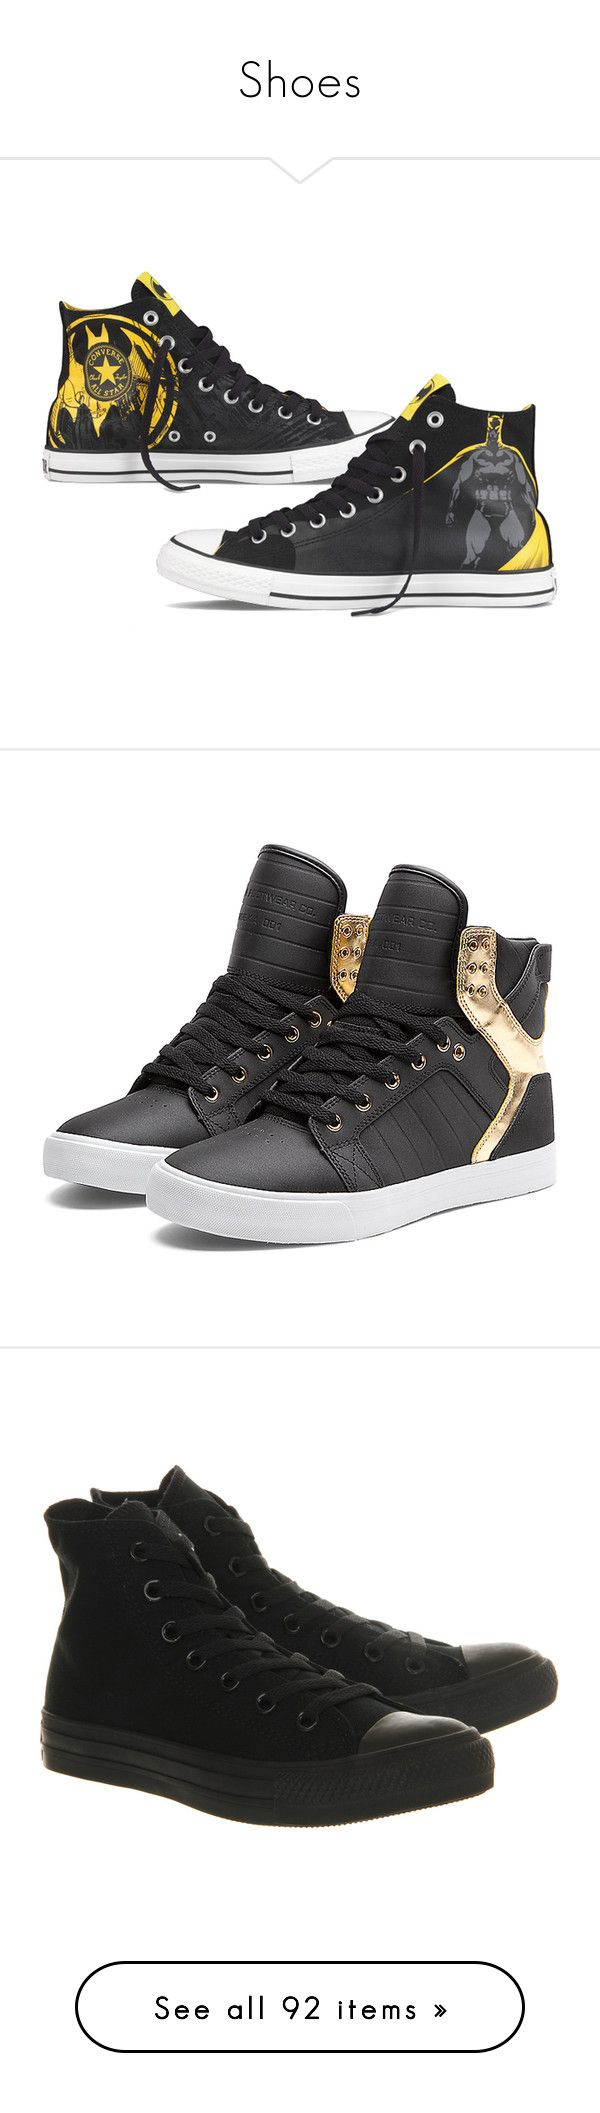 """""""Shoes"""" by believeinunicorns-137 ❤ liked on Polyvore featuring shoes, batman, sneakers, converse, superheros, supra, chaussures, sapatos, black mesh shoes and kohl shoes"""